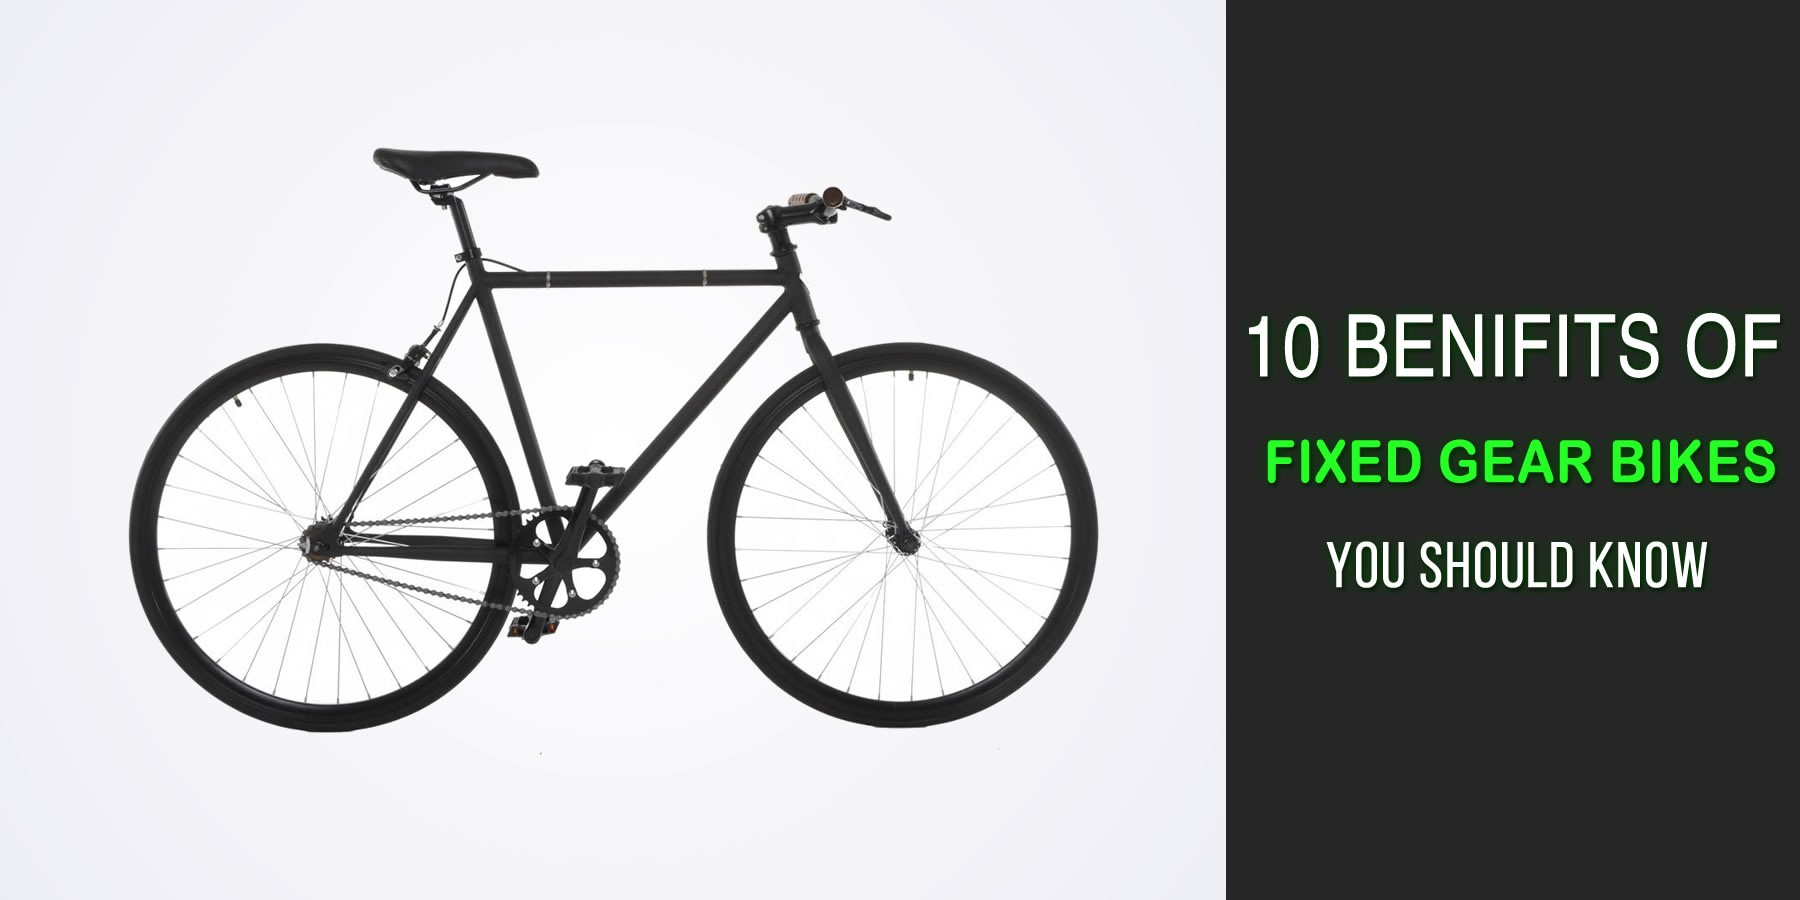 10 Benefits Of Fixed Gear Bikes You Should Know